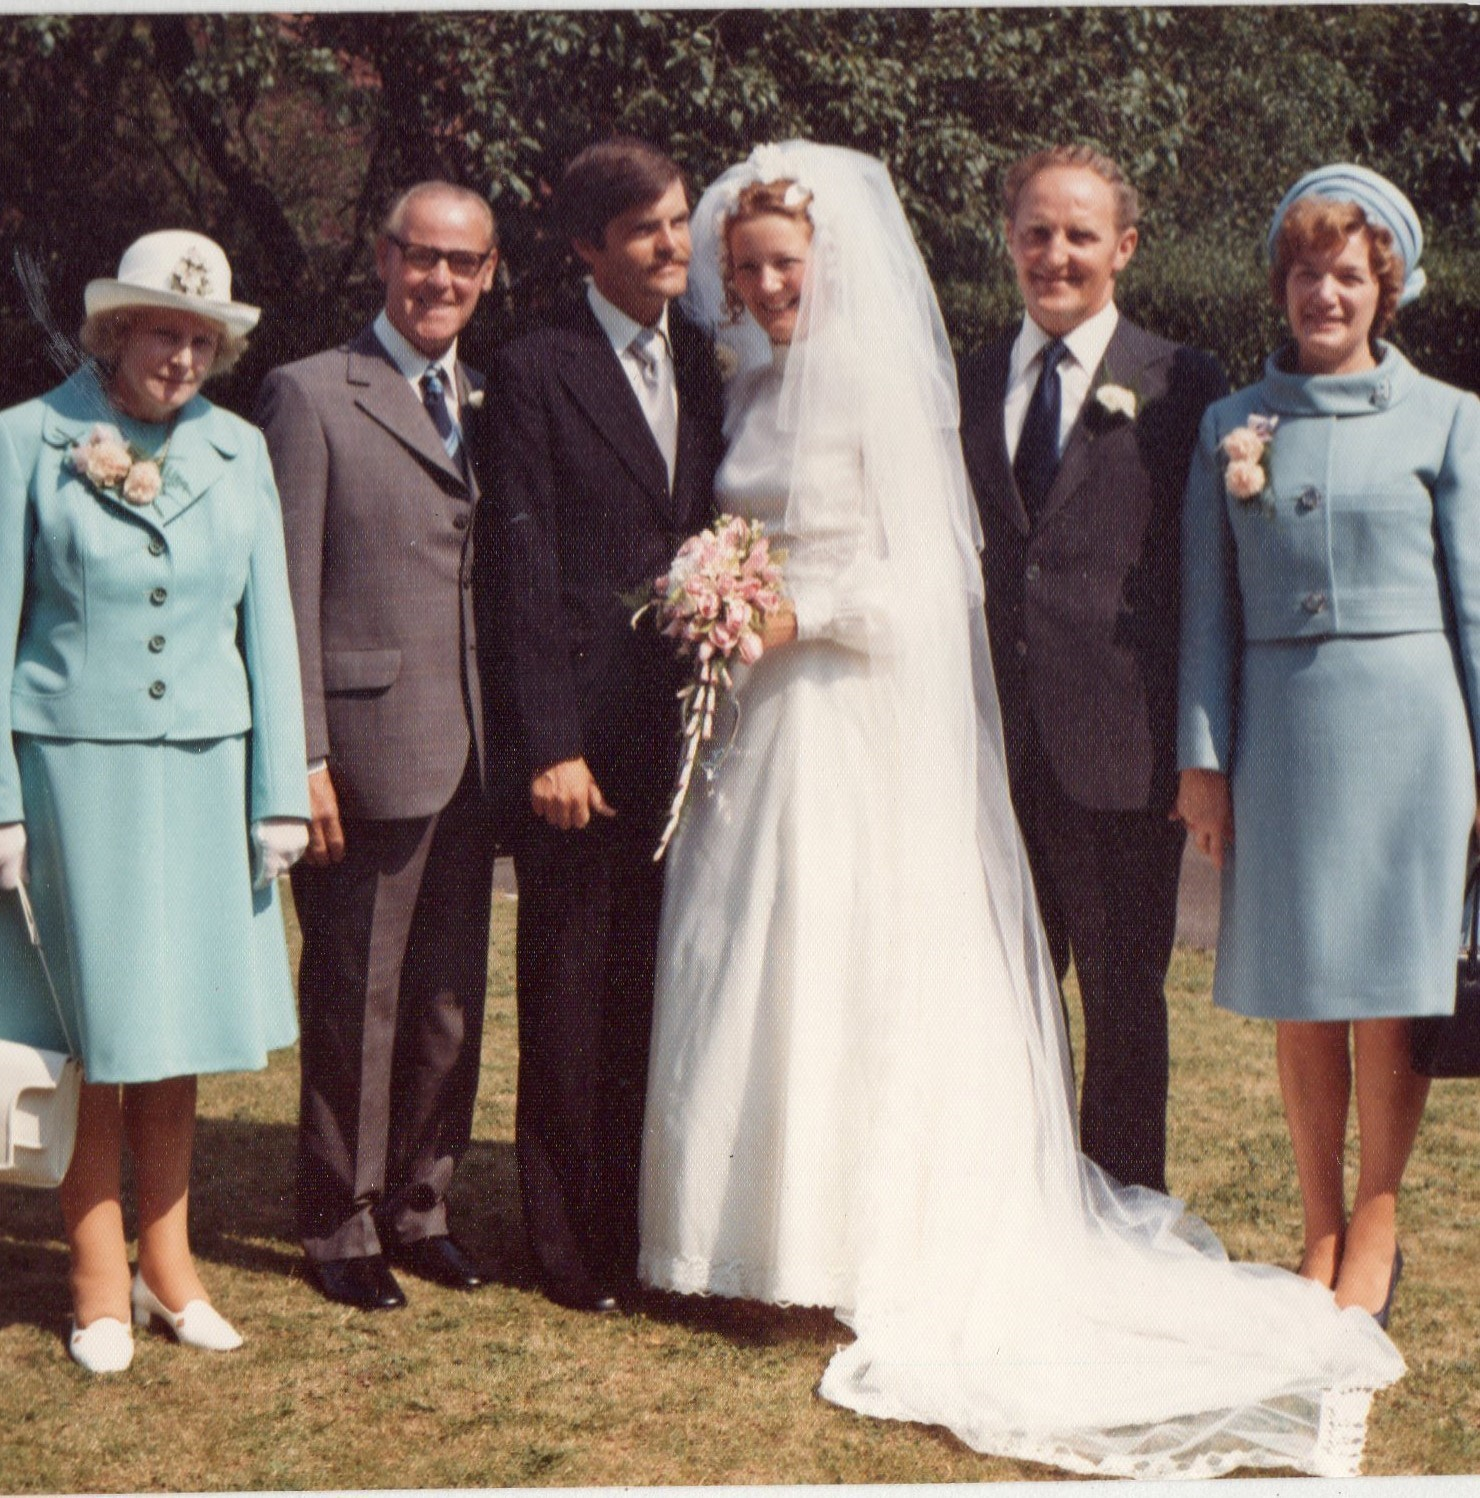 Julian & Margaret's wedding day